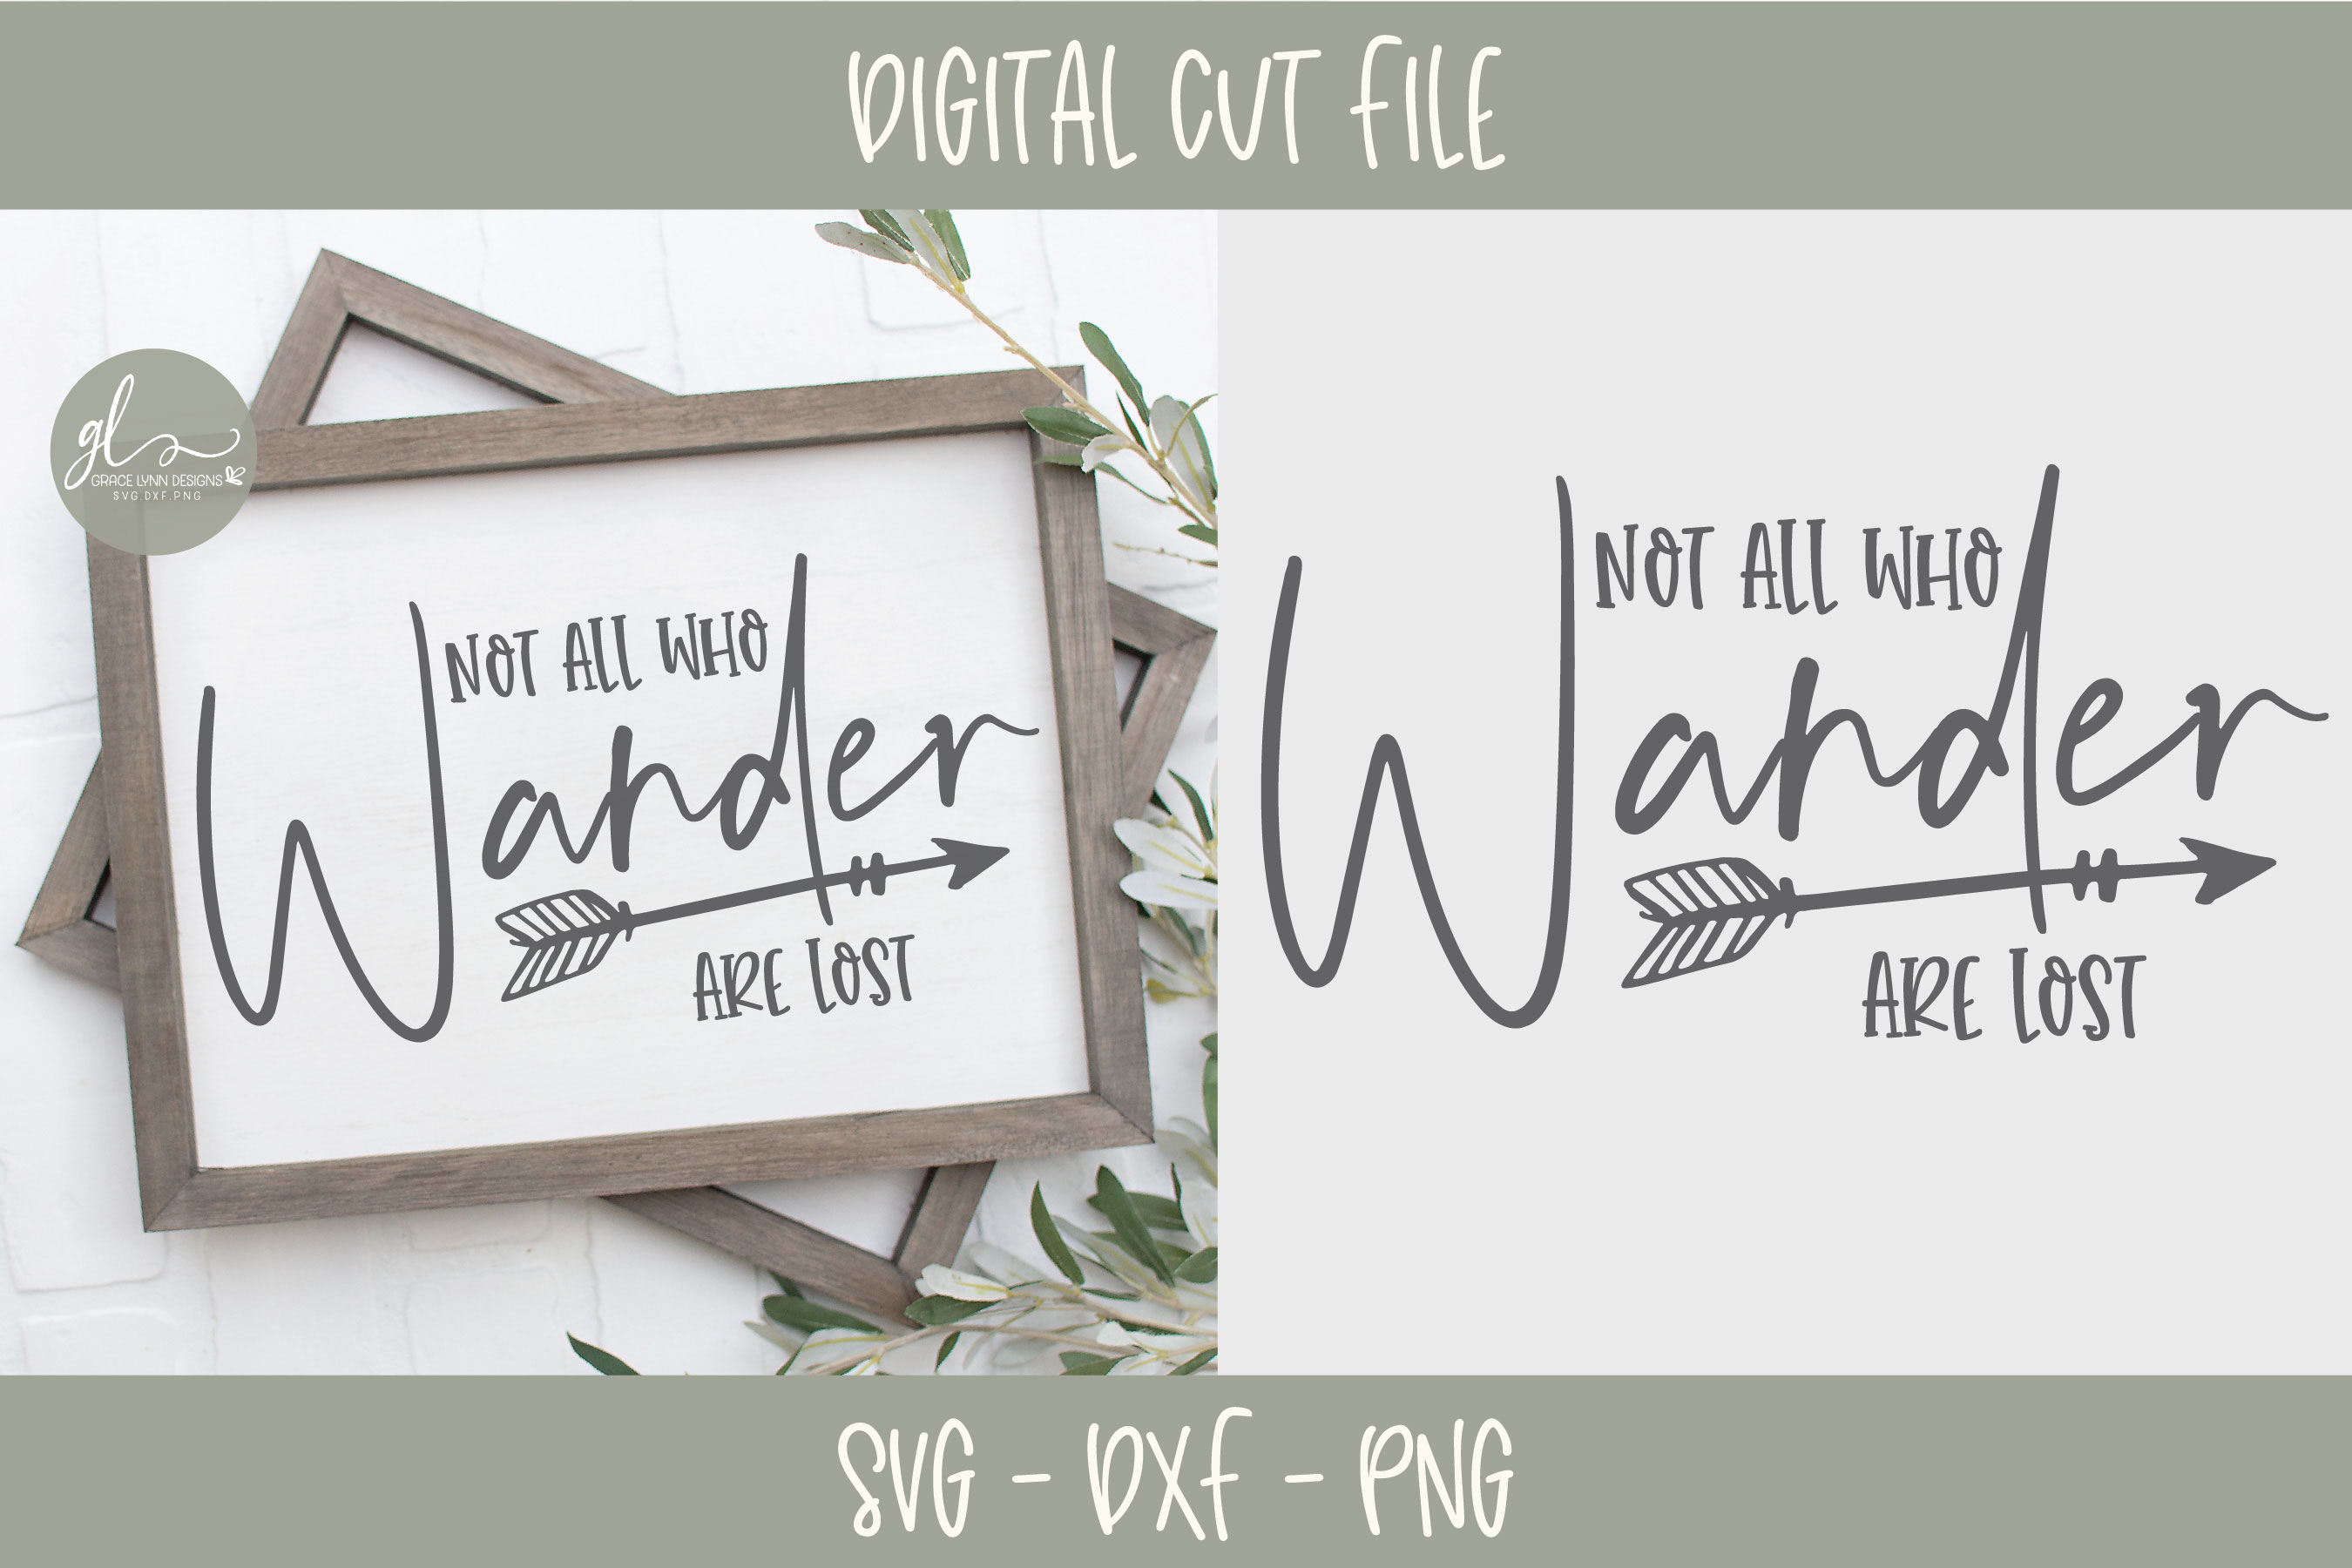 Not All Who Wander Are Lost - SVG Cut File example image 1